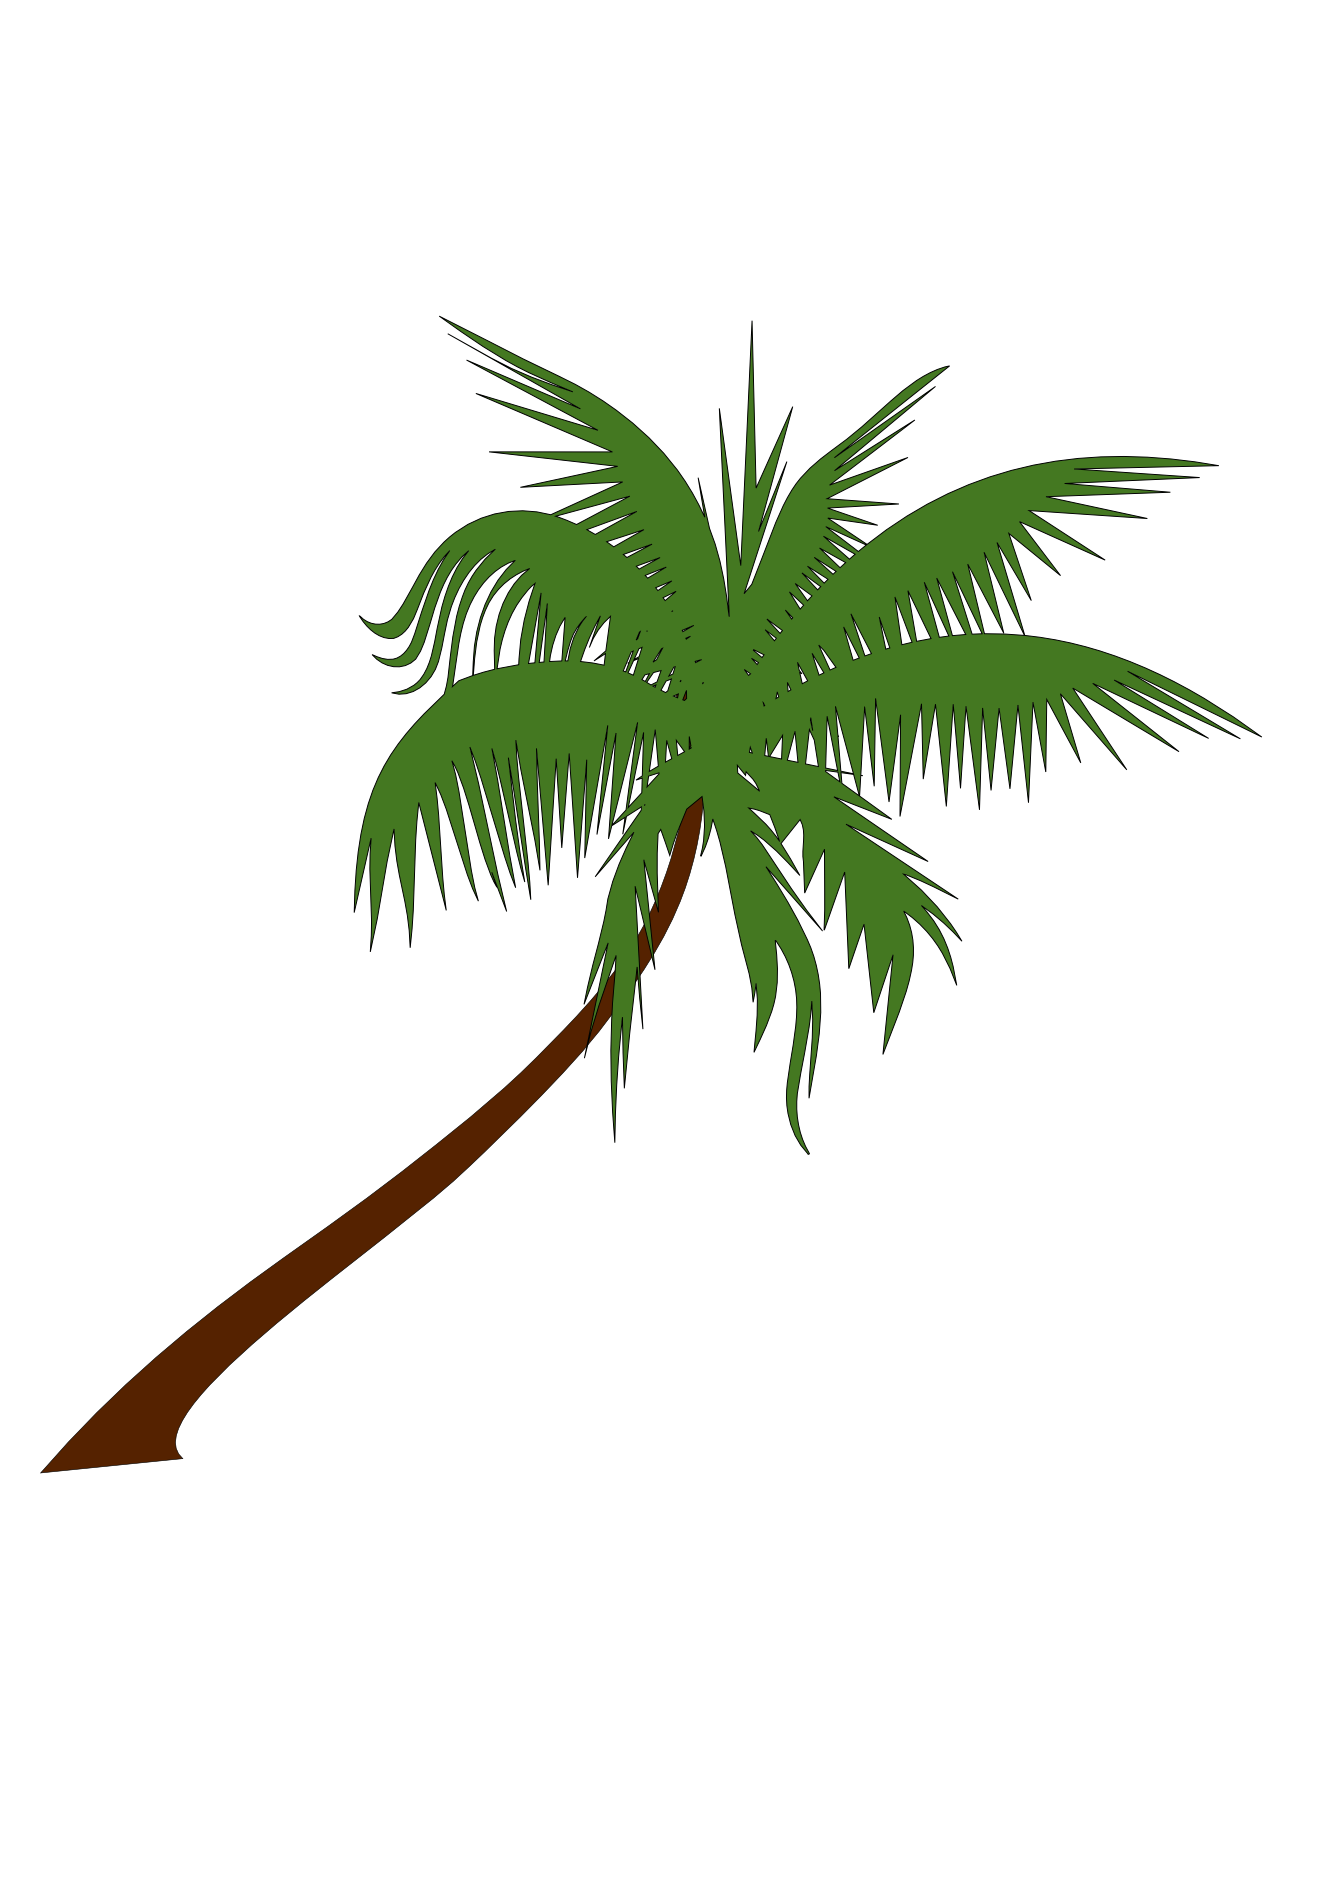 palm tree with coconuts drawing - photo #15